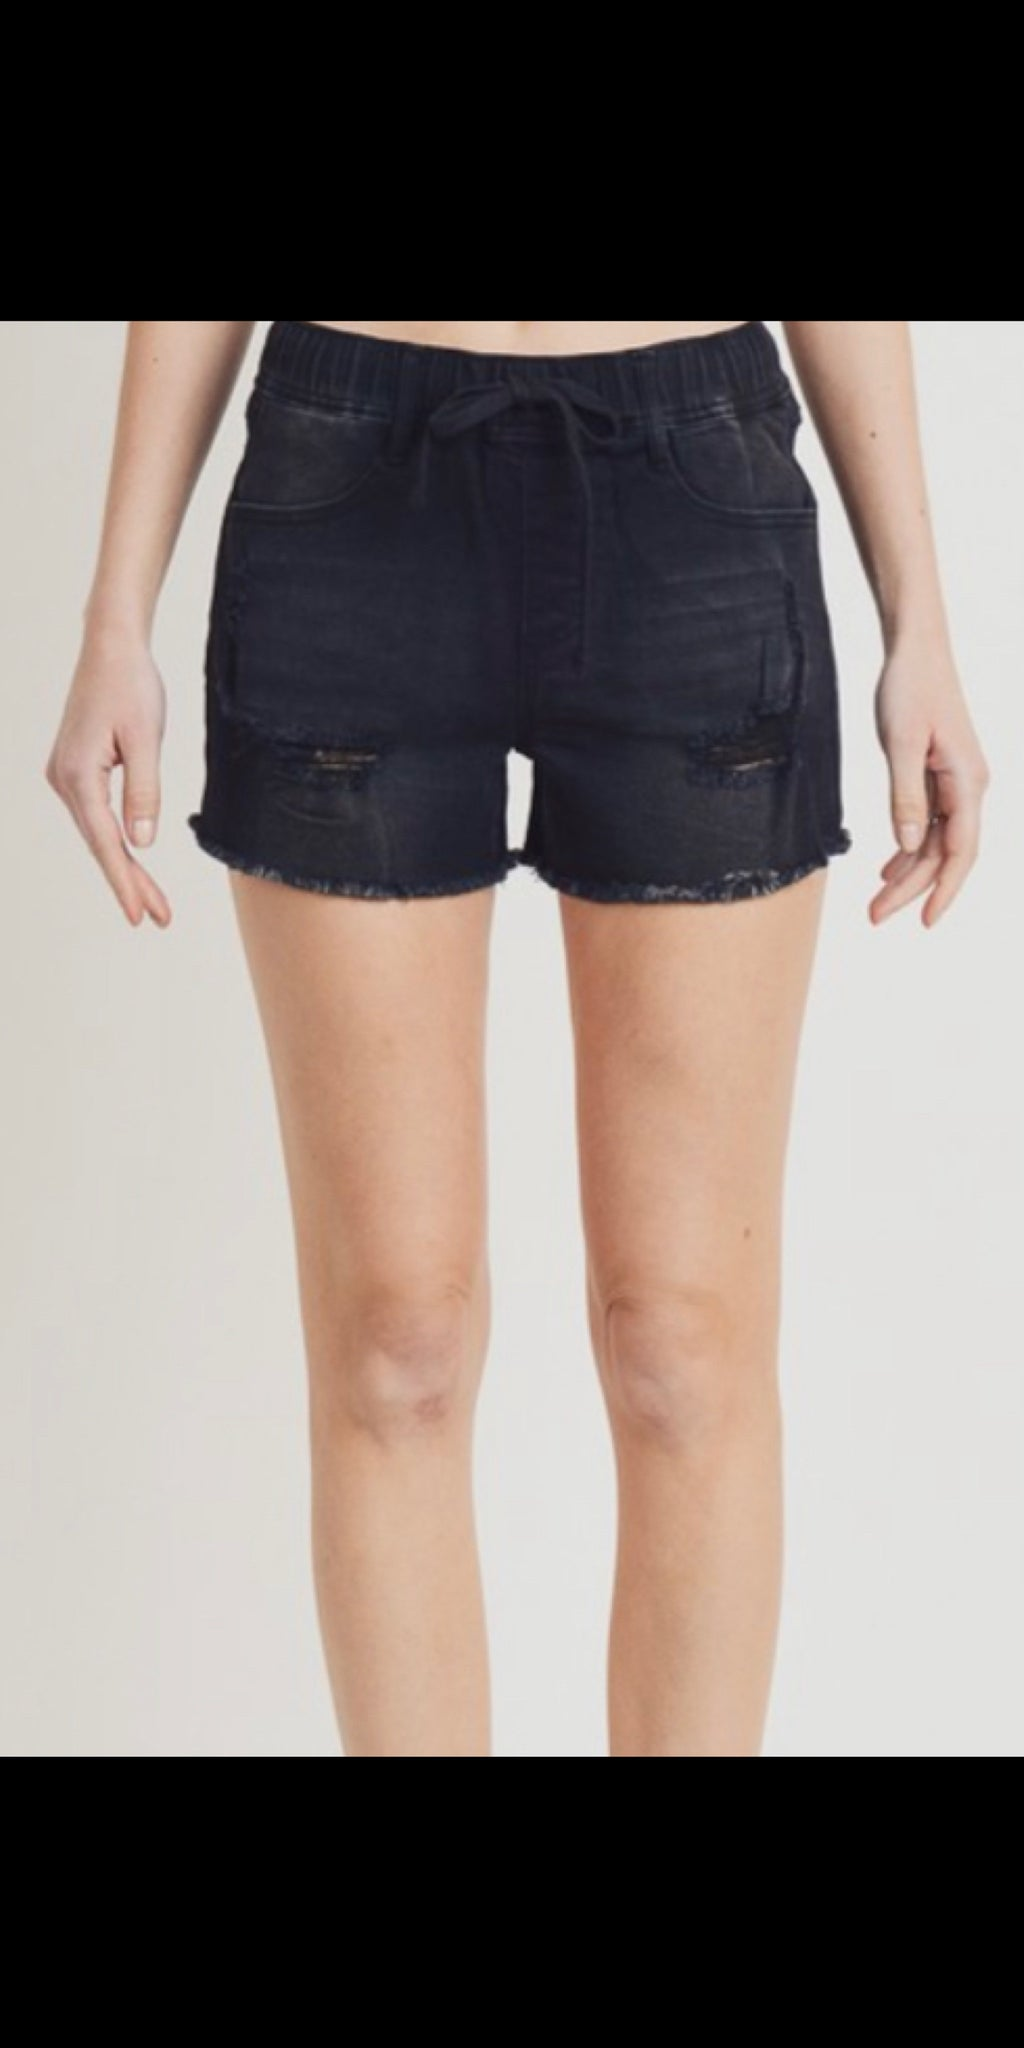 Boujee Black Distressed Denim Shorts - Also in Plus Size